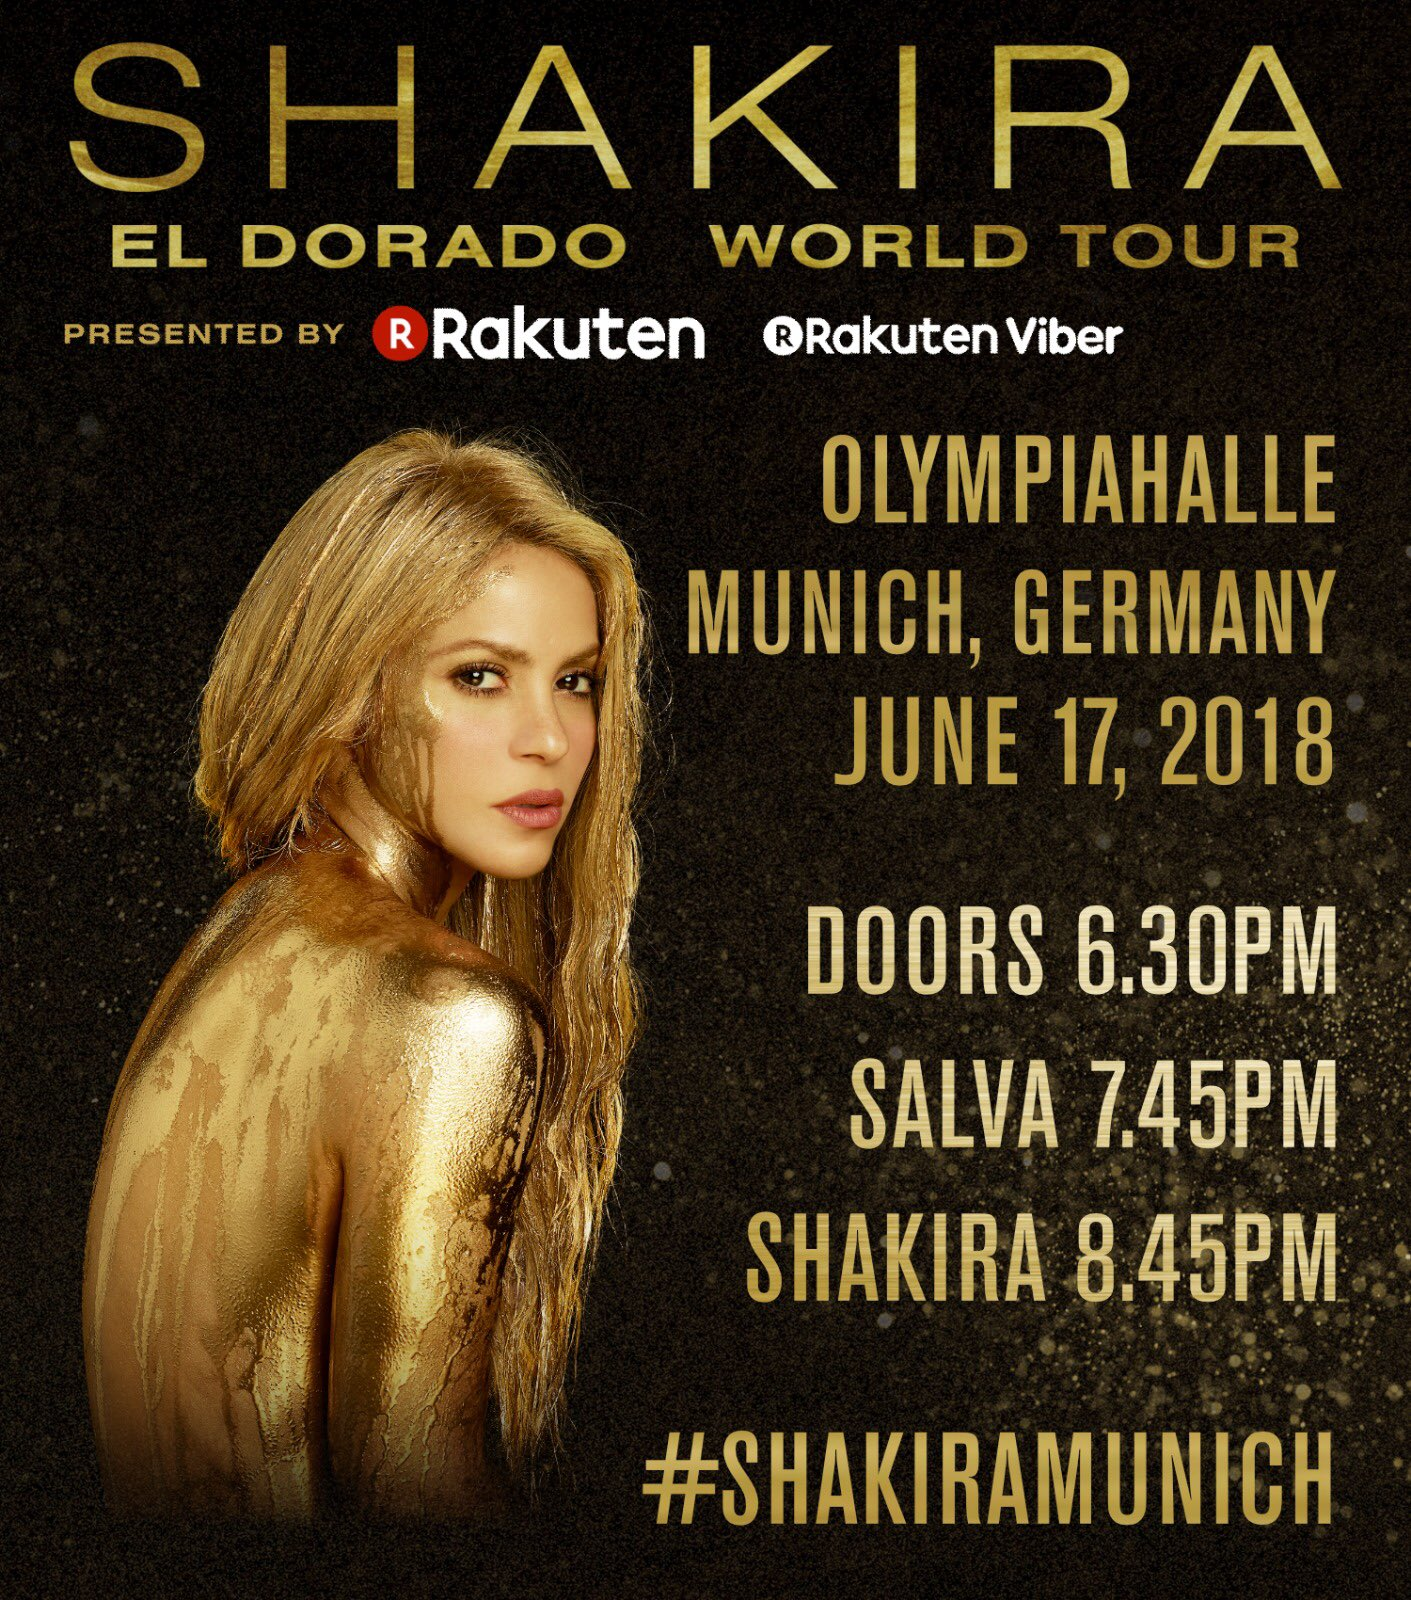 Hallo Deutschland! Here are the times for tonight's #ShakiraMunich show. ShakHQ https://t.co/avxGwr7GDw